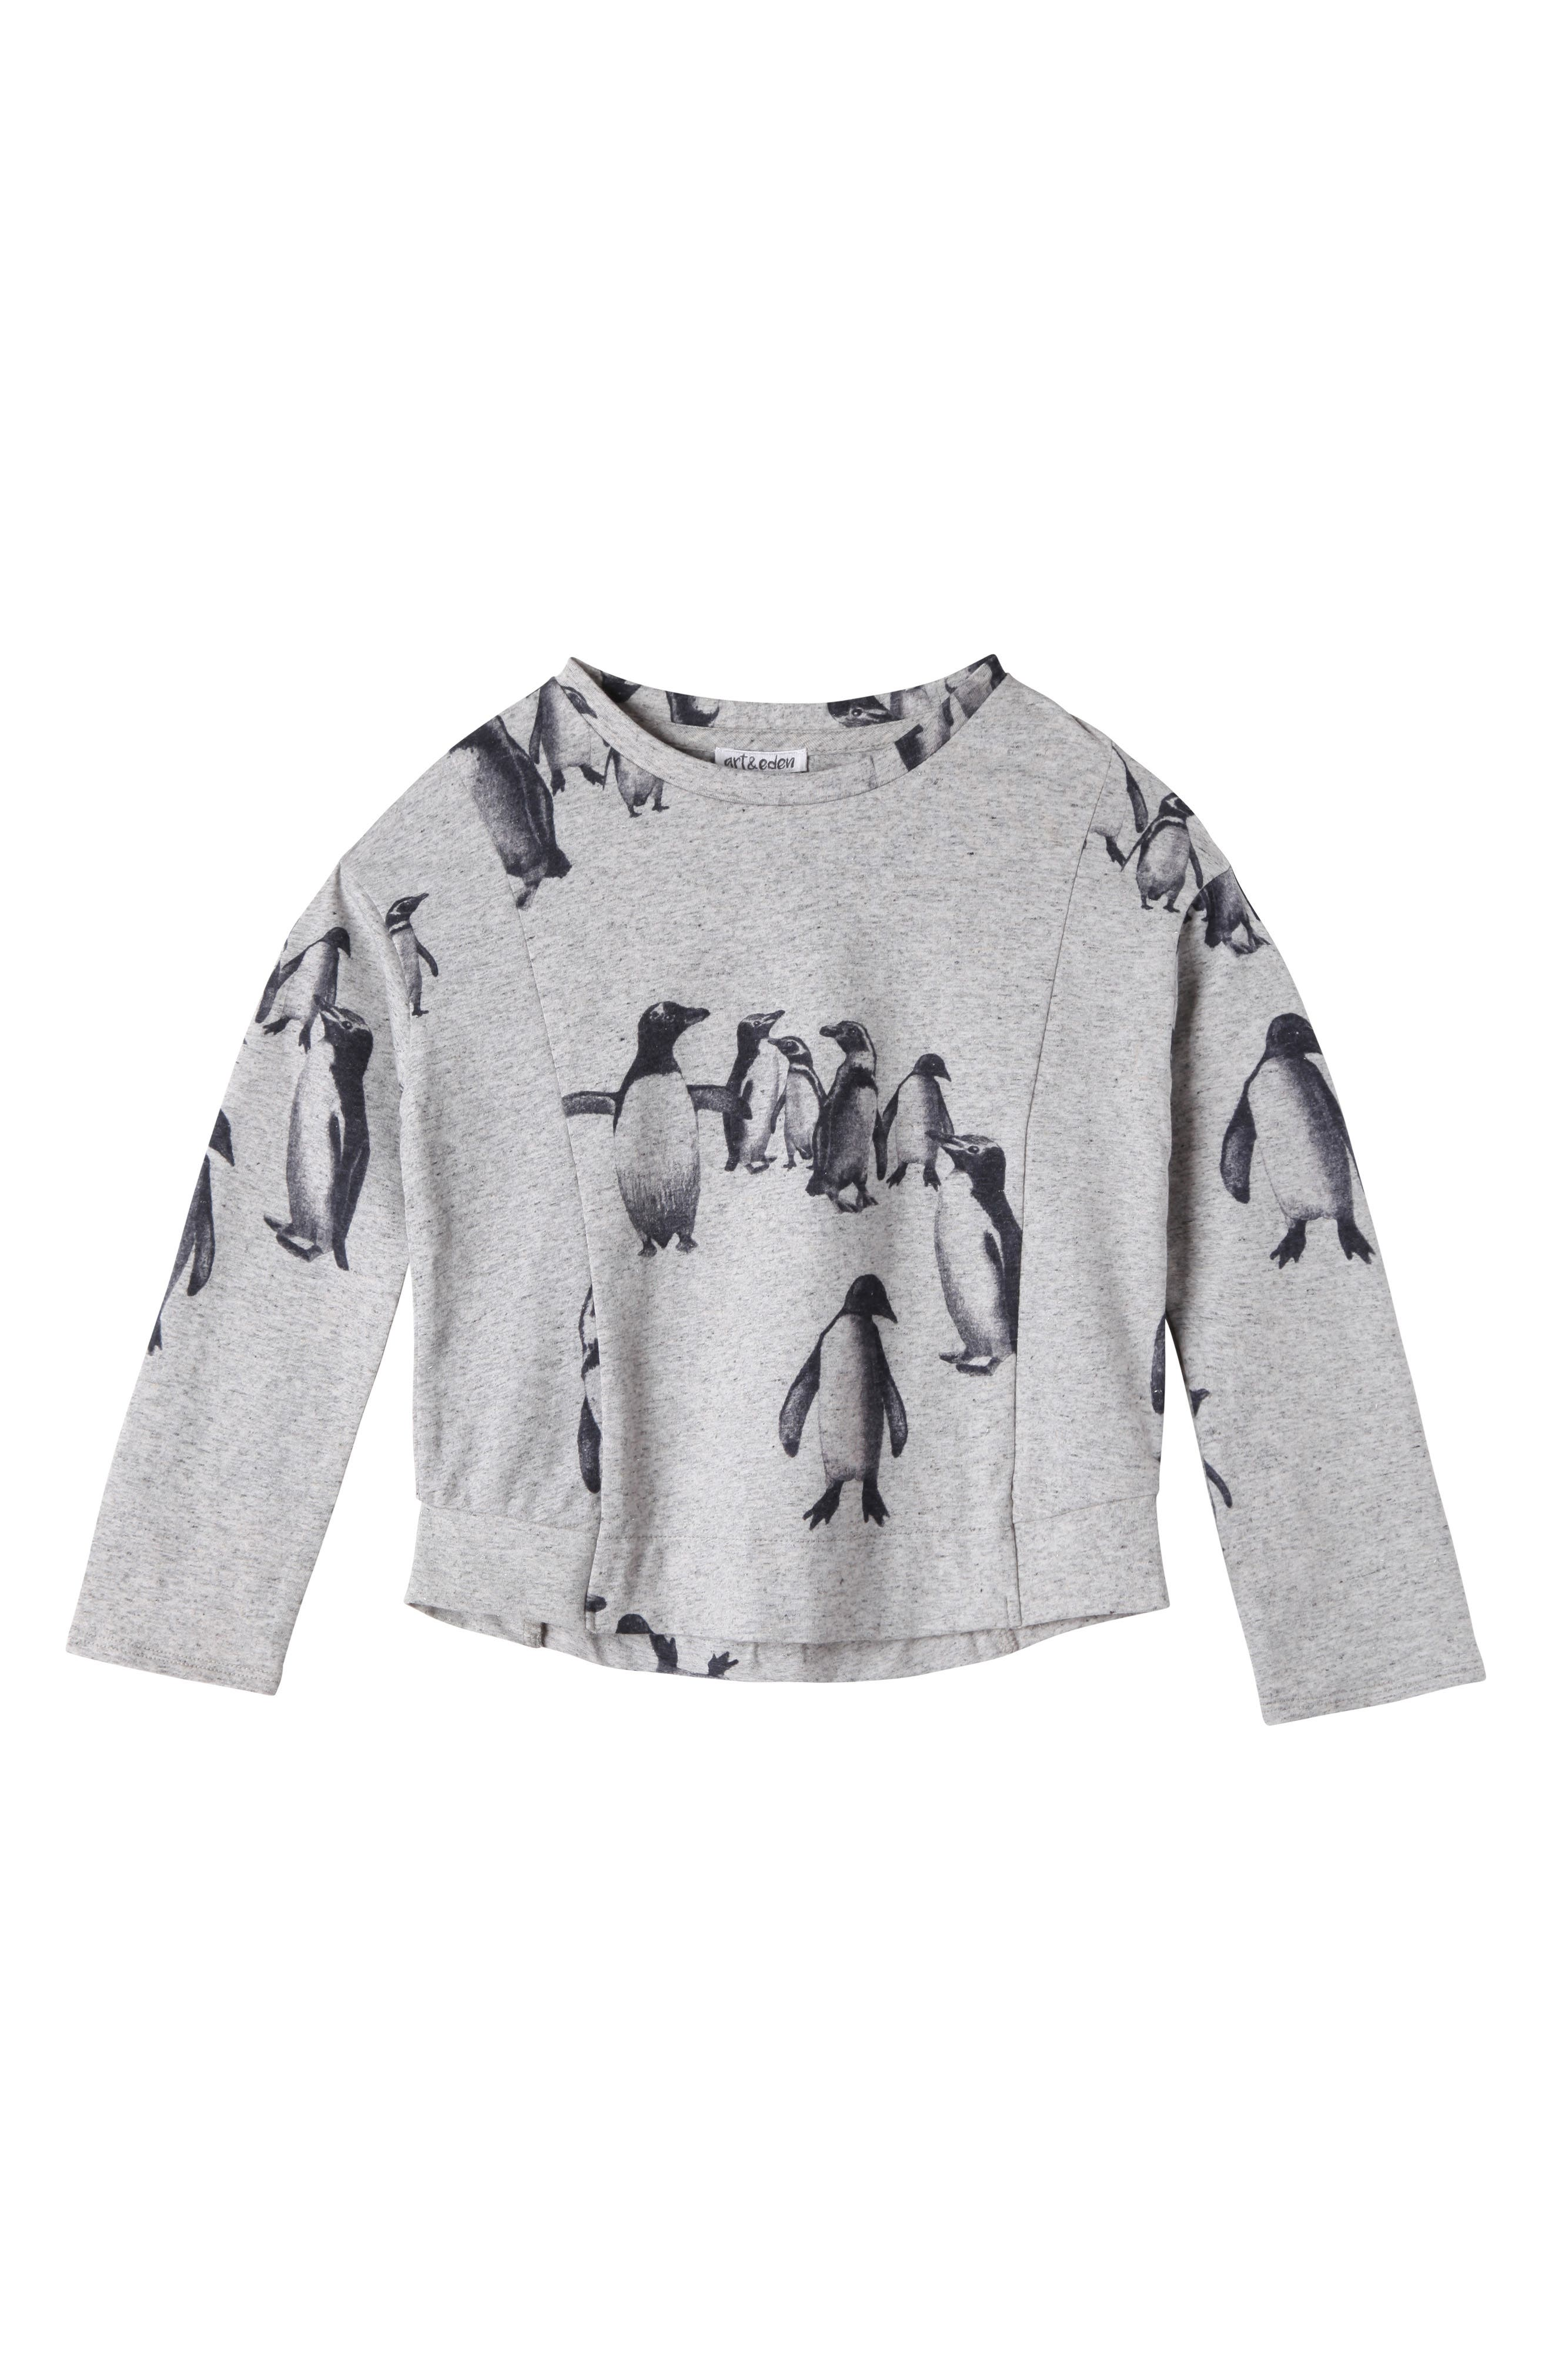 Main Image - Art & Eden Eva Penguin Print Tee (Toddler Girls & Little Girls)